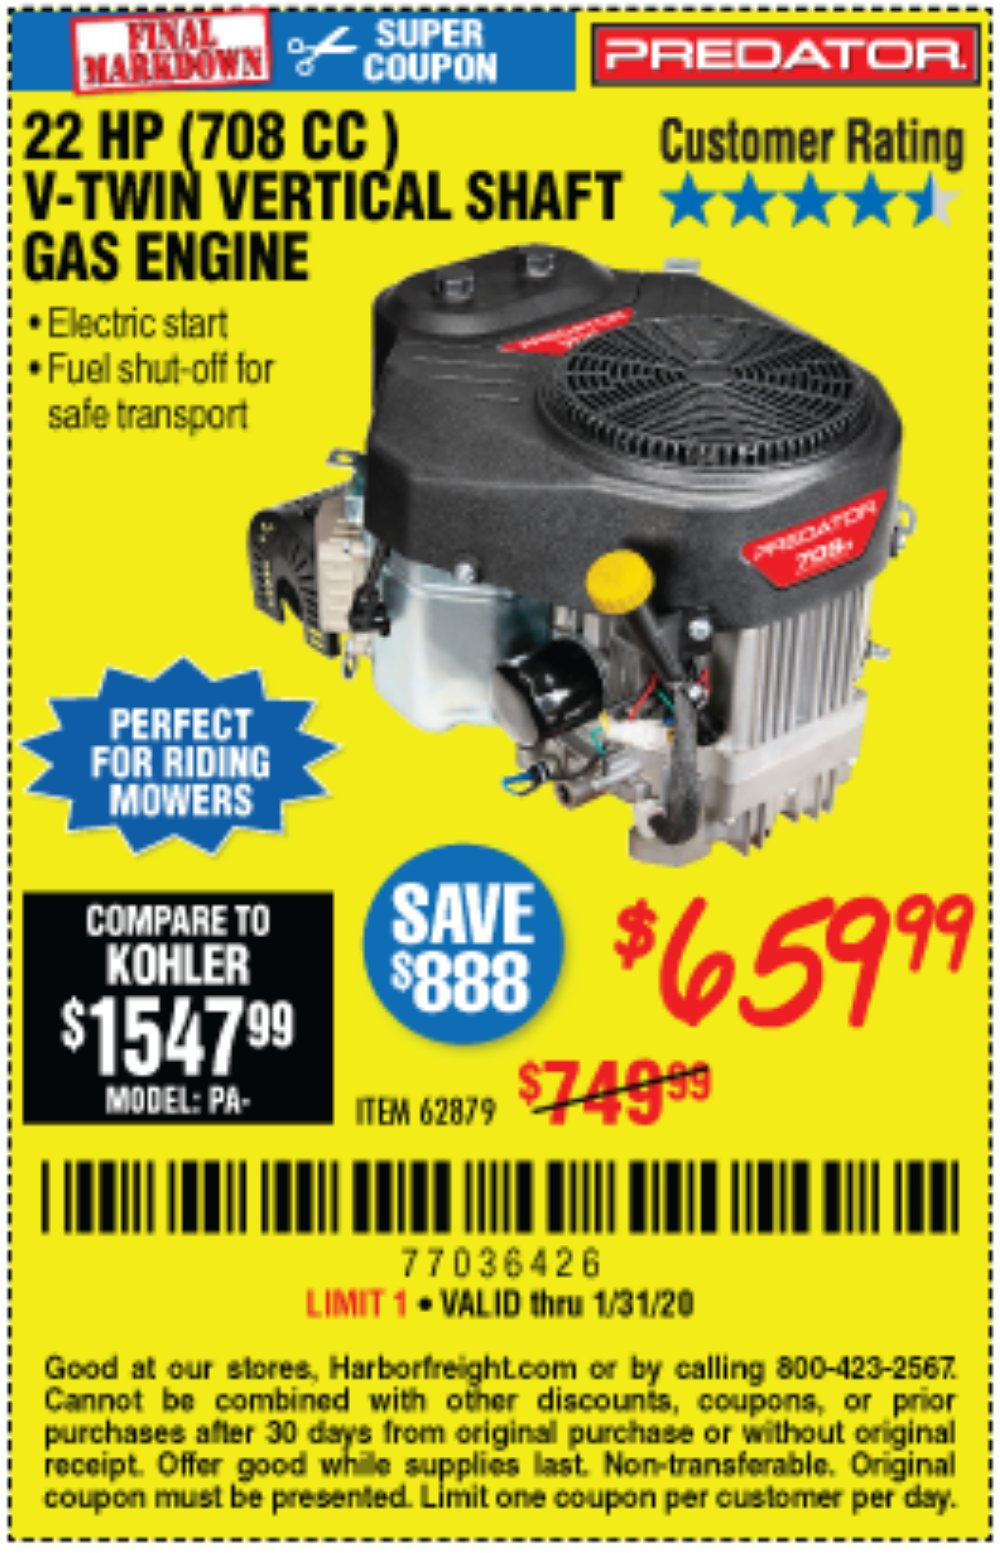 Harbor Freight Coupon, HF Coupons - 22 Hp (708 Cc) V-twin Vertical Shaft Engine